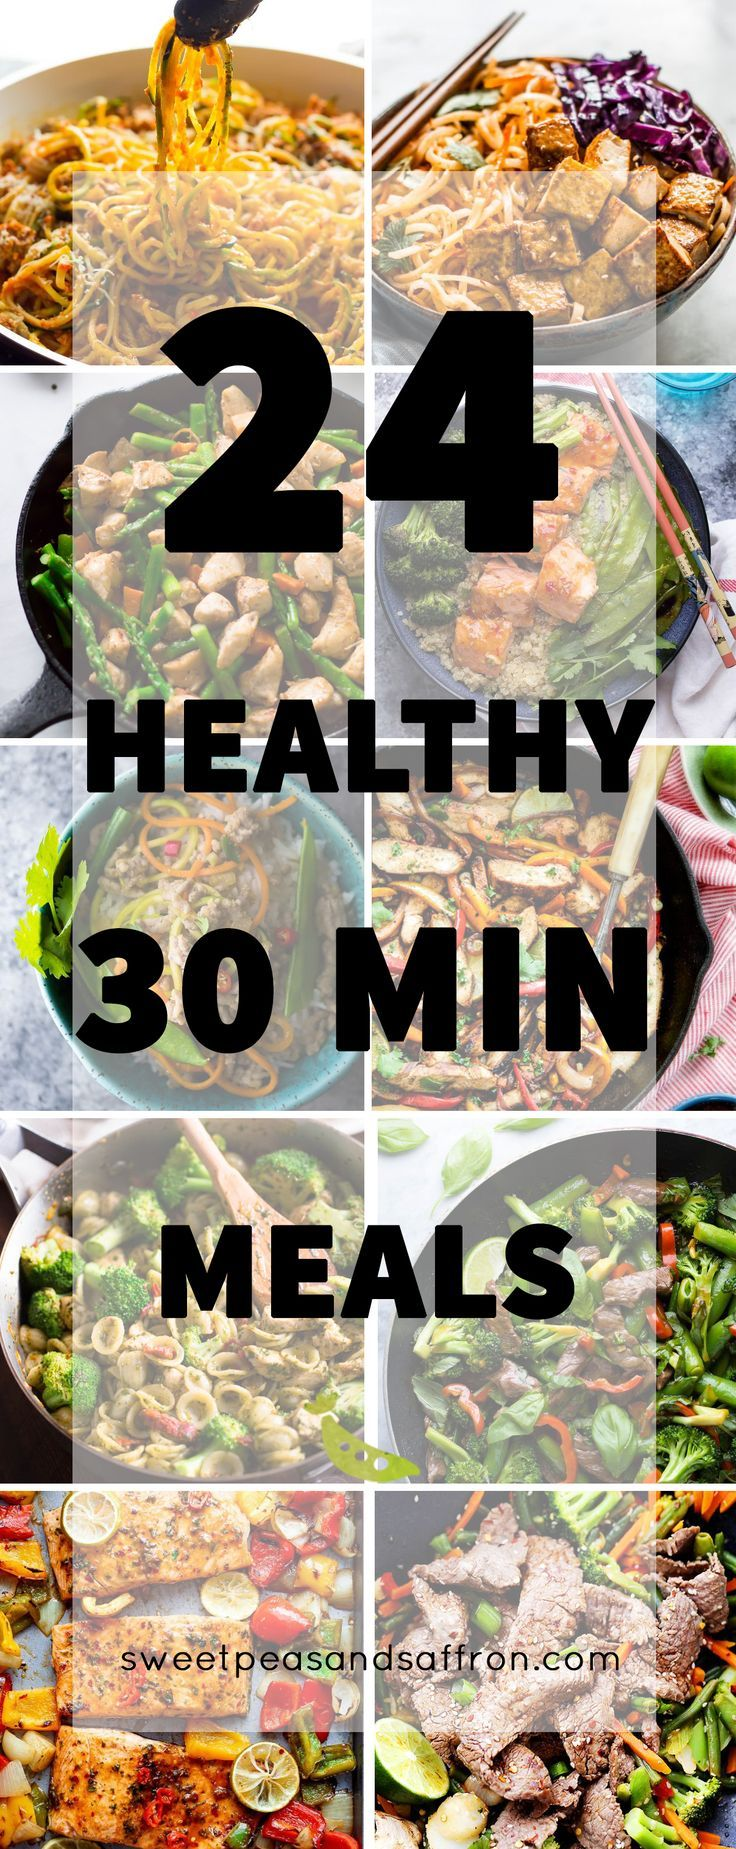 24 Healthy 30 Minute Meals images